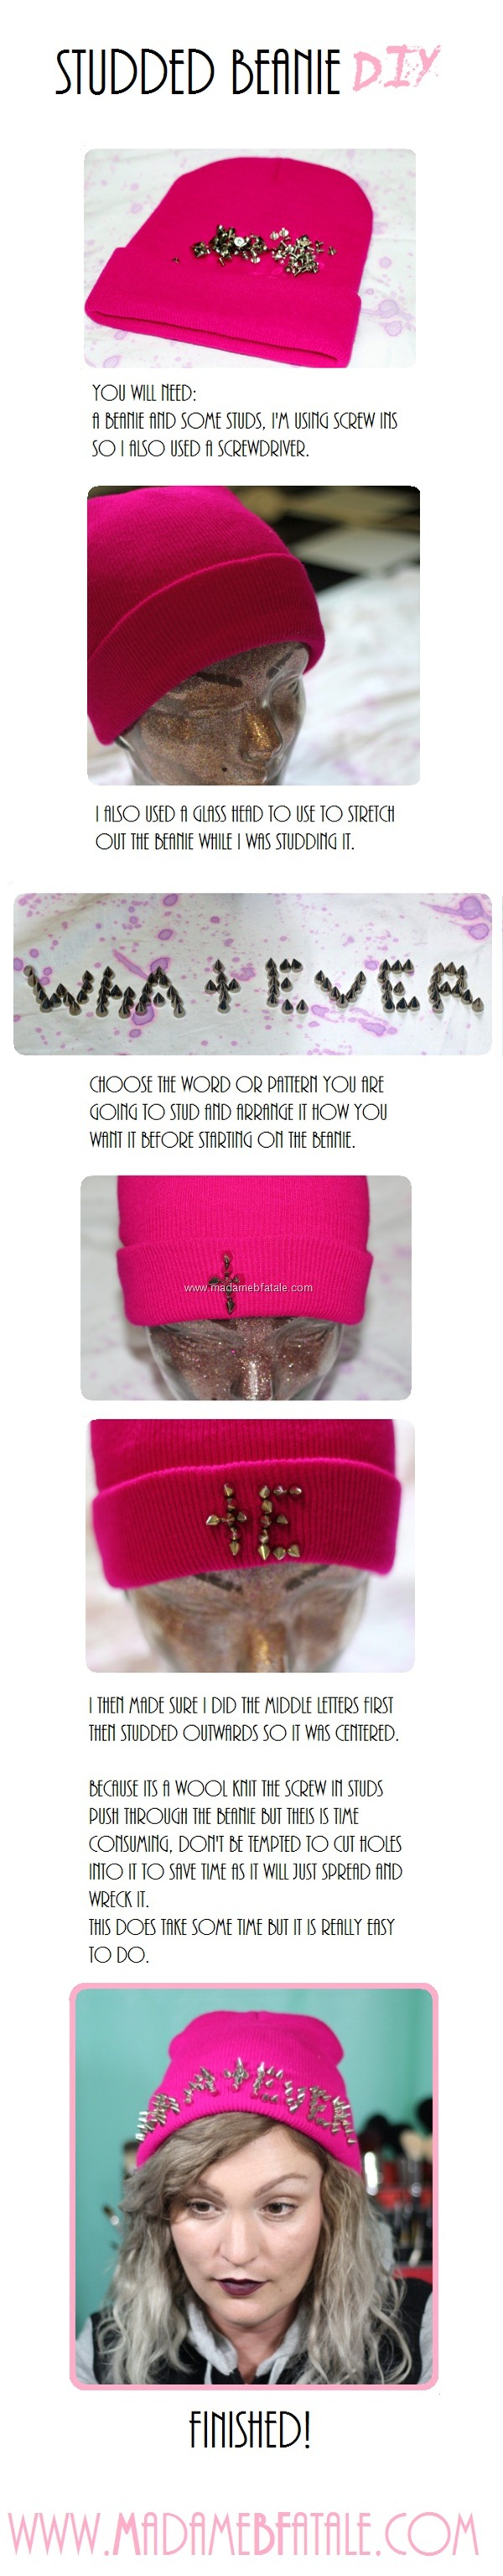 Studded Beanie DIY tutorial whatever 90s grunge